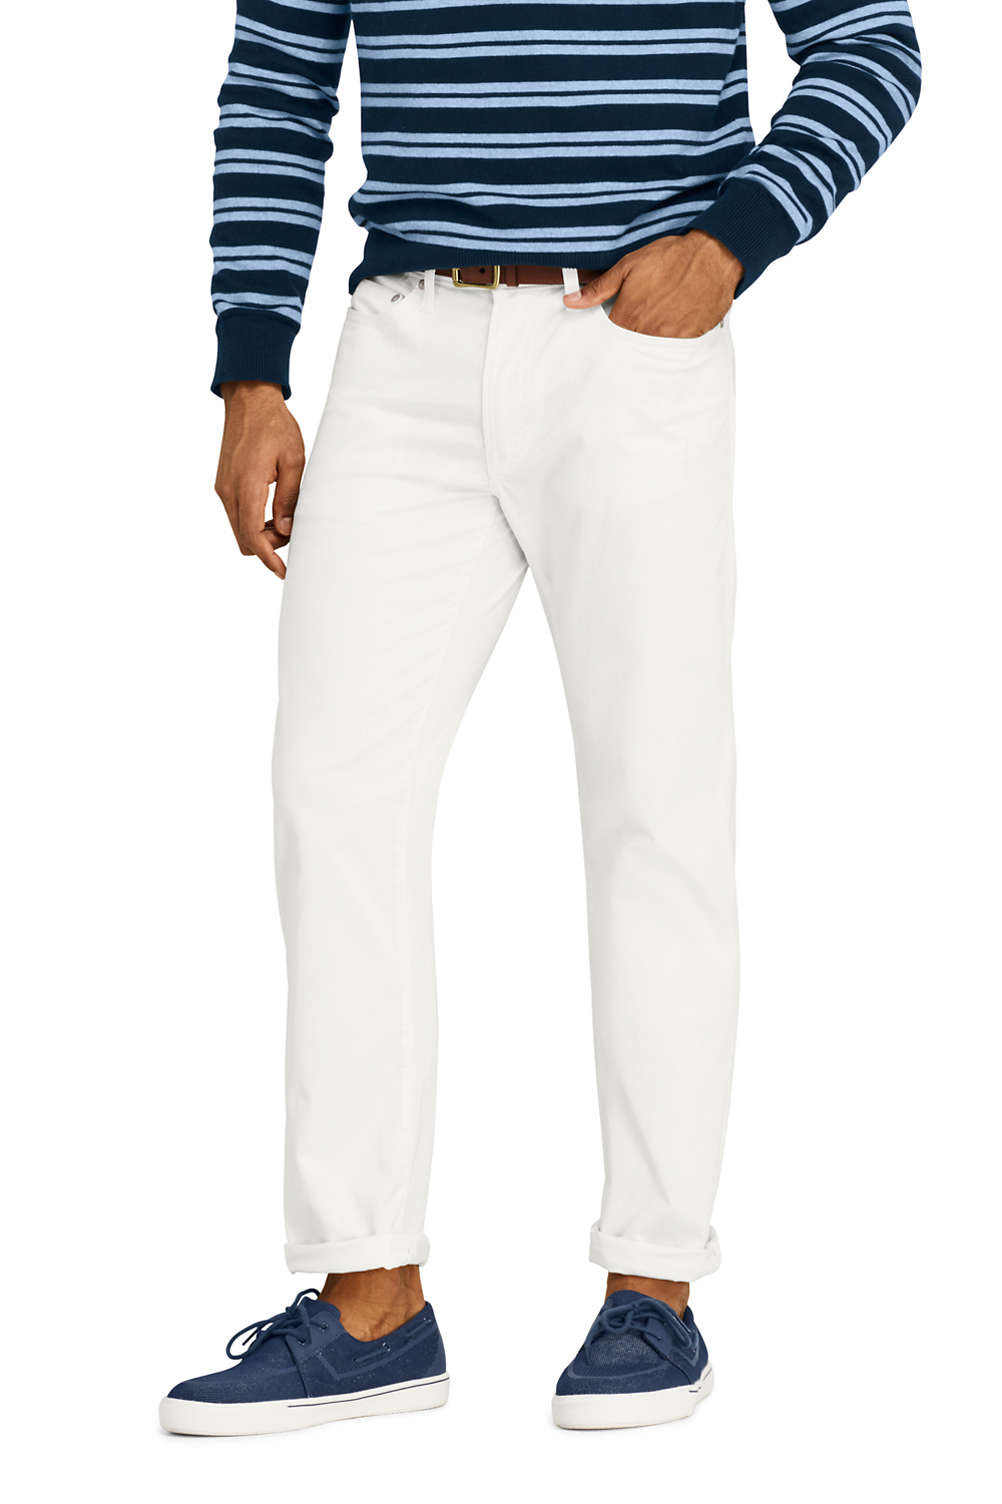 e9a77881 Men's Straight Fit Stretch Garment Dye 5 Pocket Knockabout Chino Pants from  Lands' End